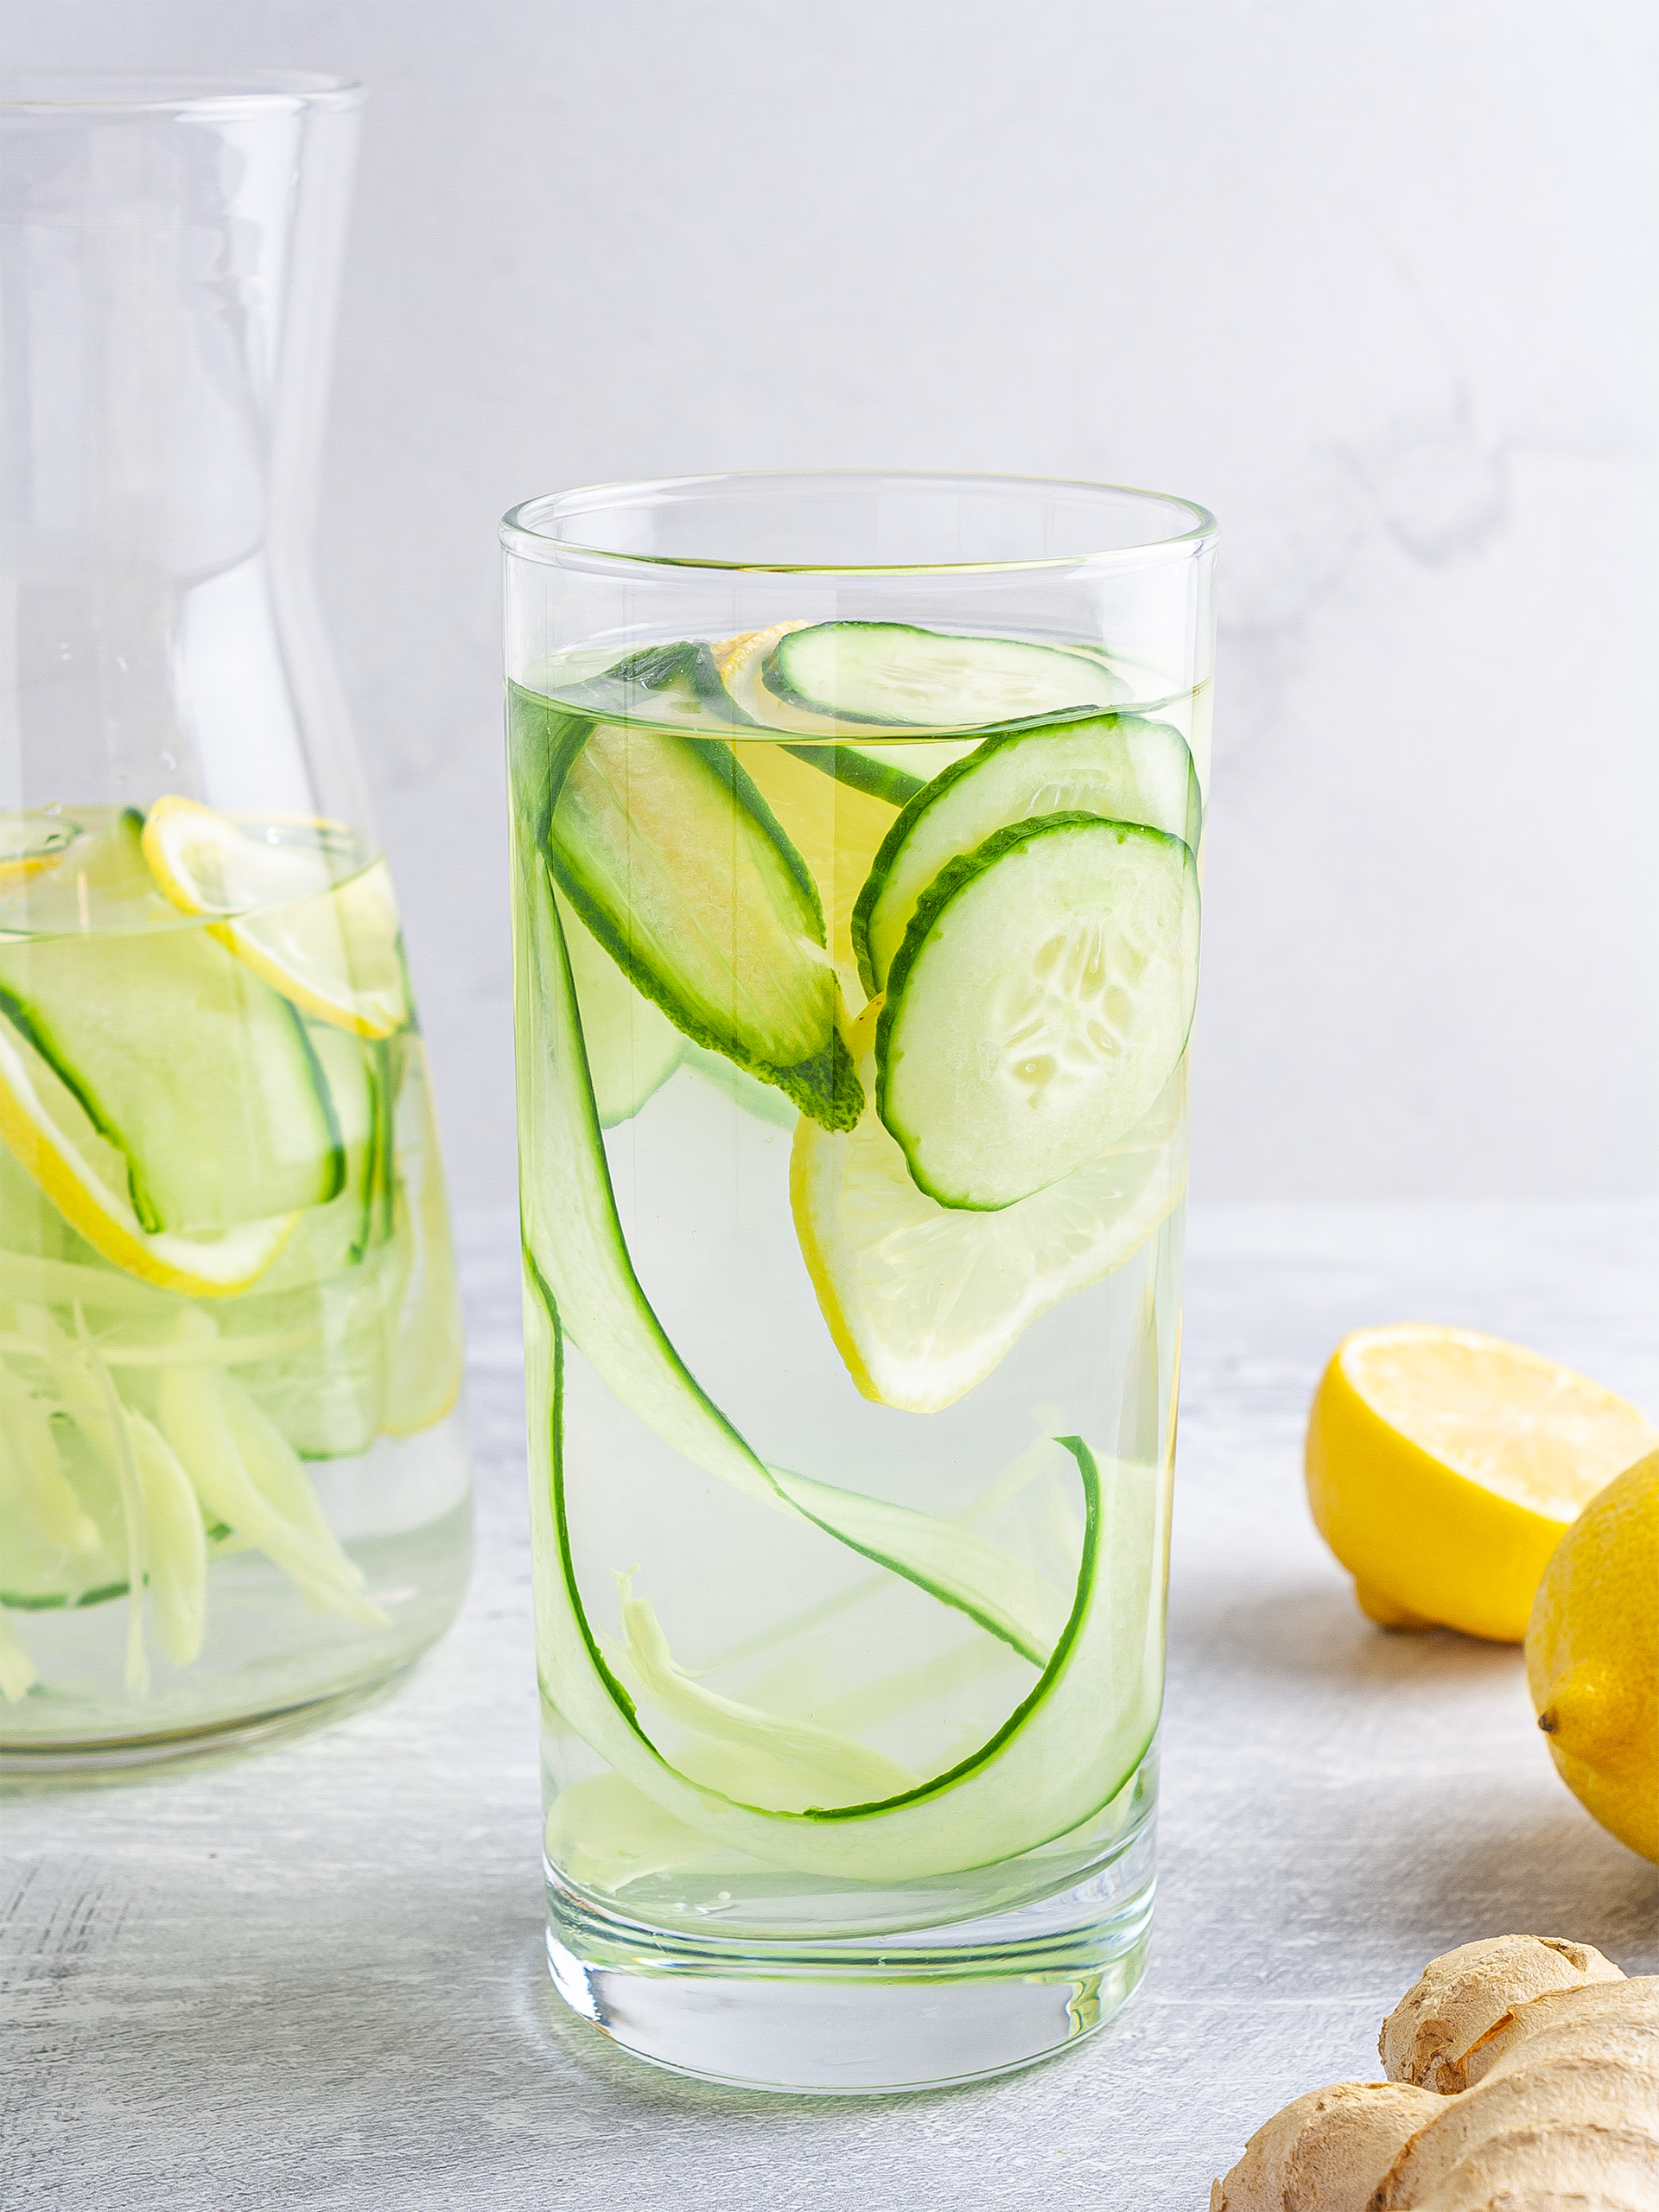 Cucumber ginger lemon water in a glass